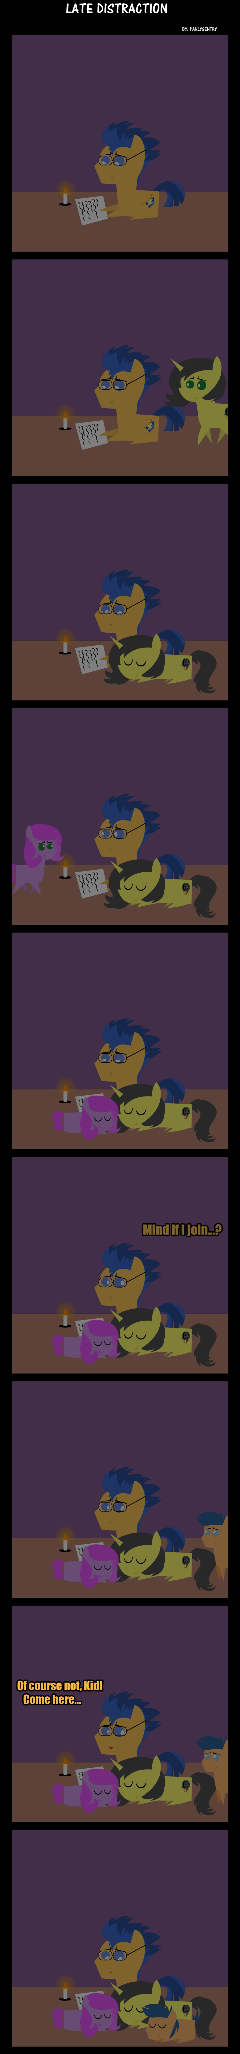 [MLP] Late Distraction